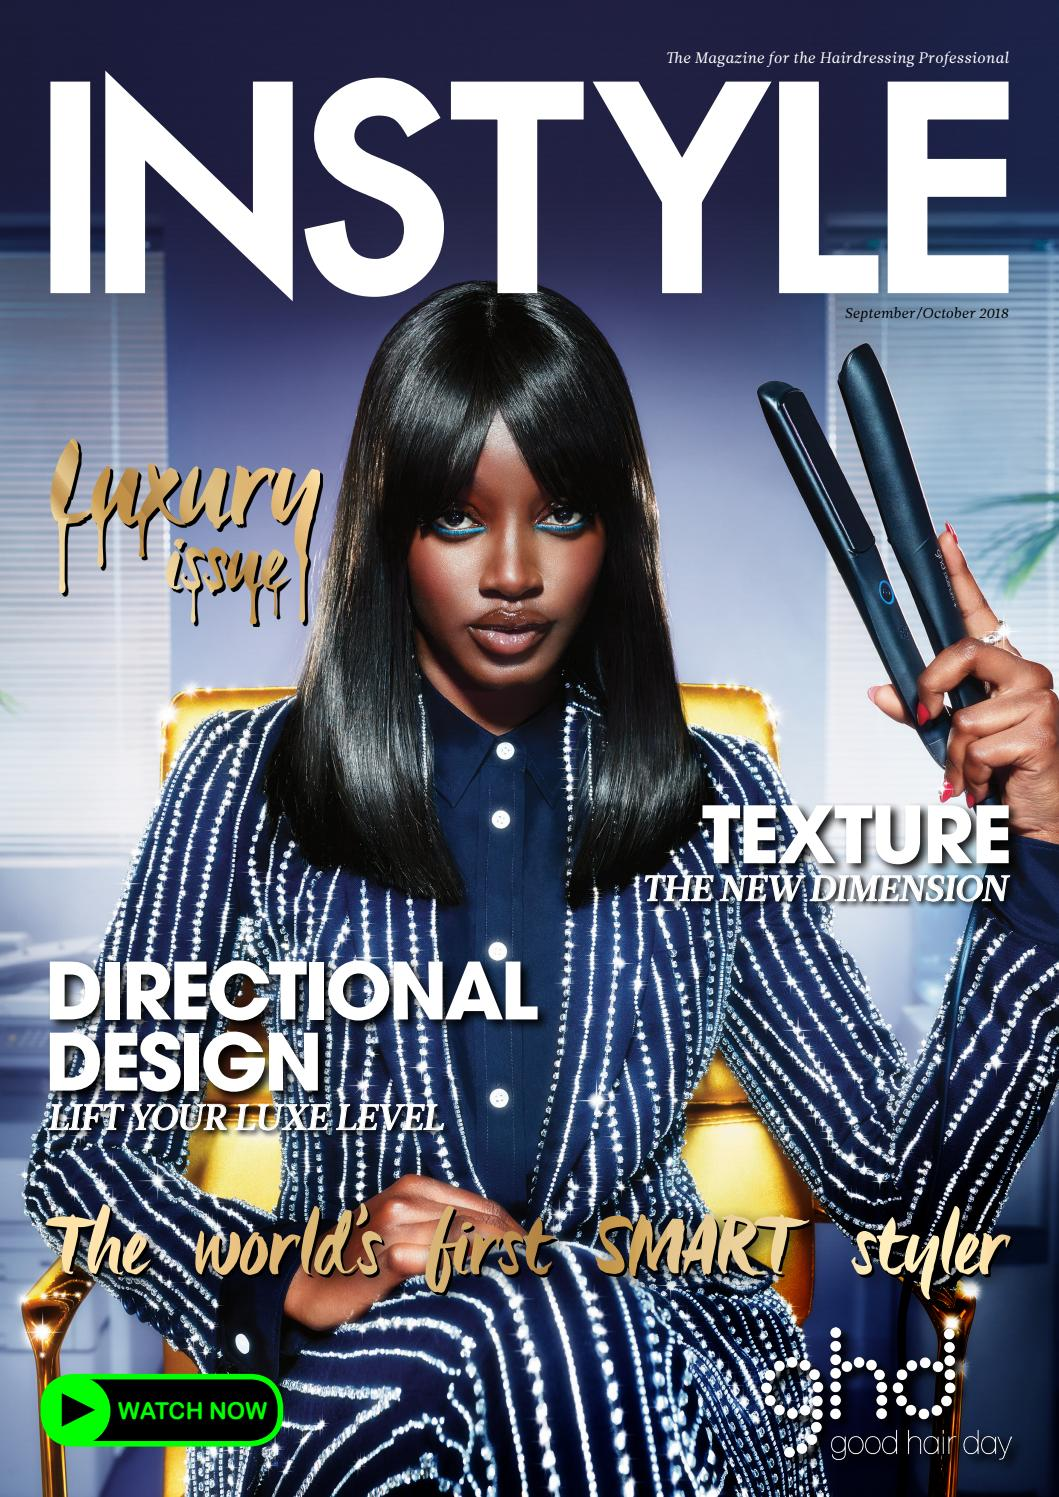 INSTYLE September/October 2018 by The Intermedia Group - issuu